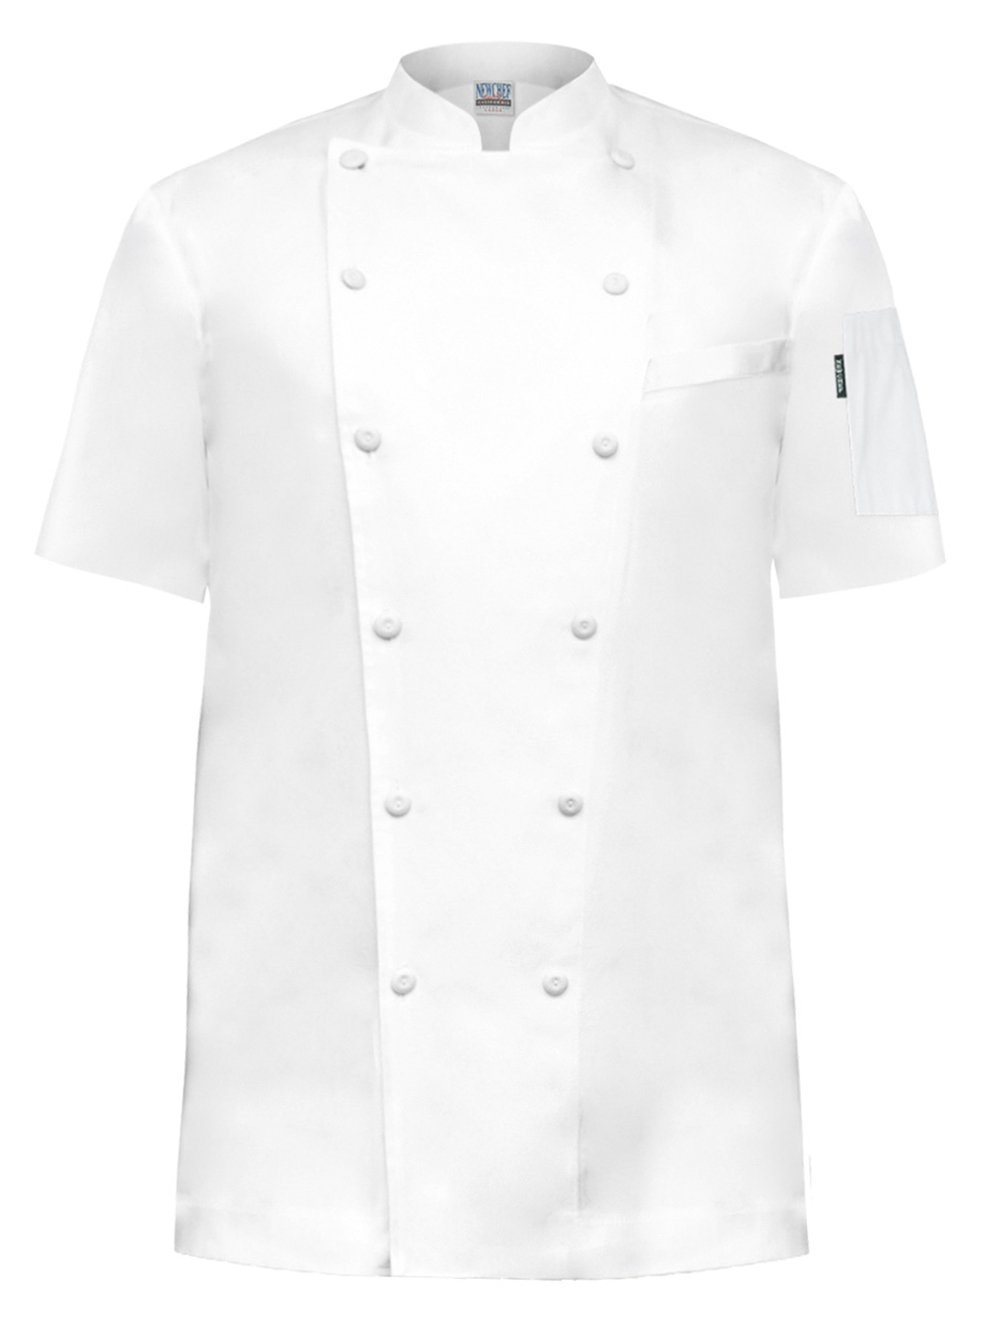 Newchef Fashion Prince White Egyptian Cotton Chef Coat Breast Pocket Short Sleeves M White by Newchef Fashion